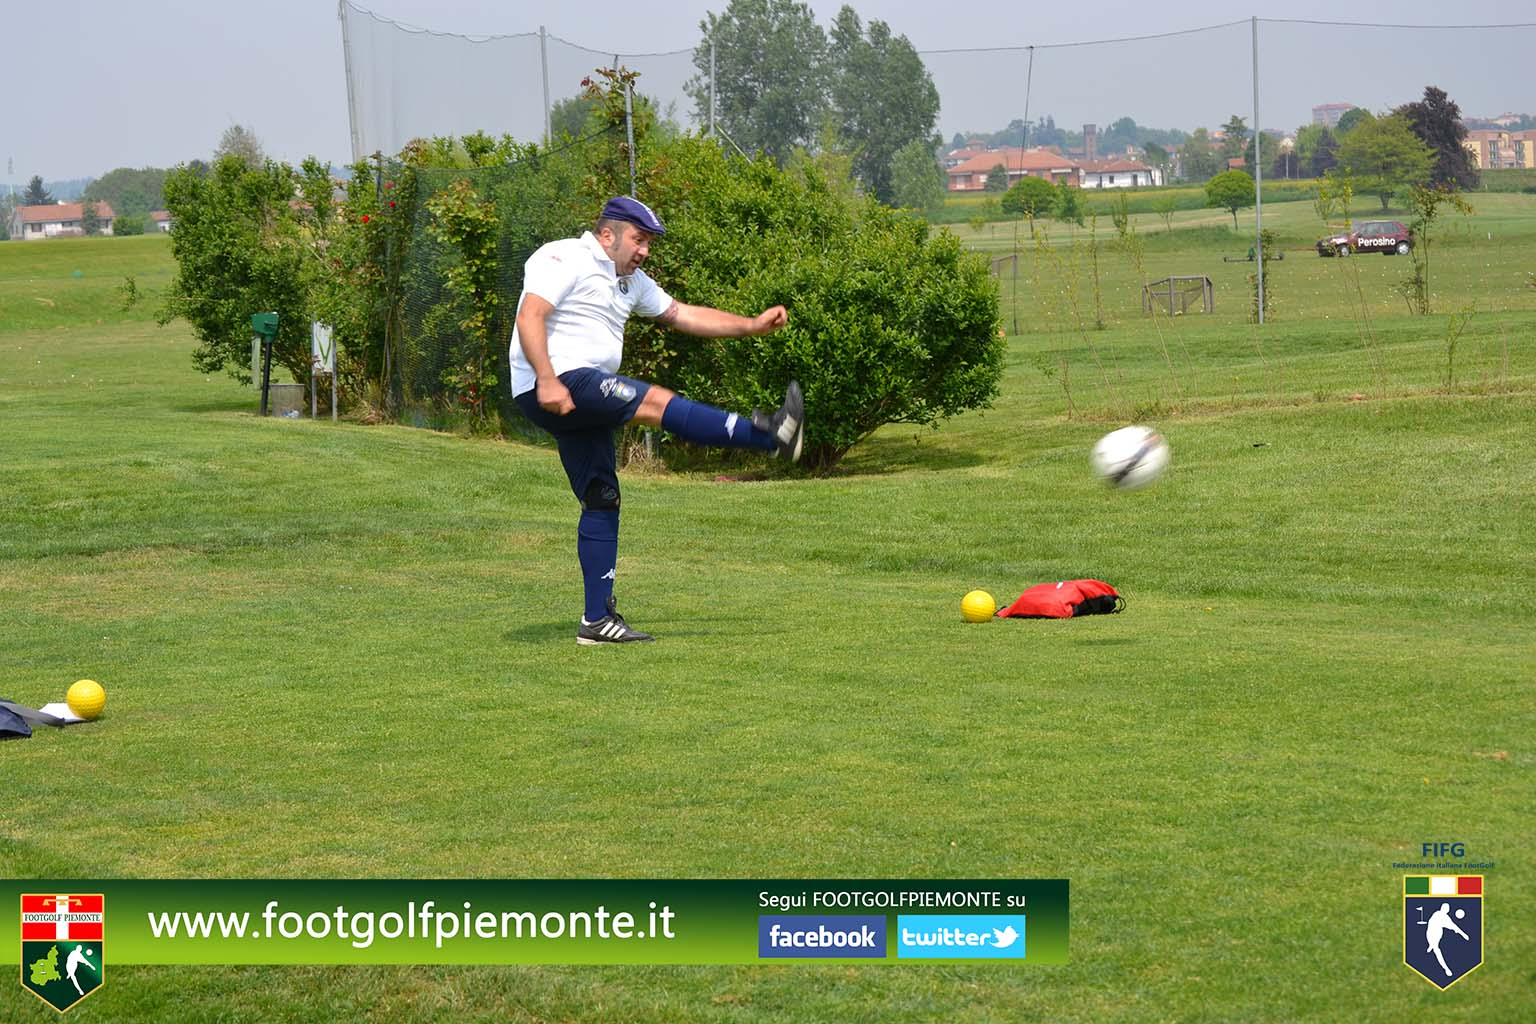 FOTO 9 Regions' Cup Footgolf Piemonte 2016 Golf Città di Asti (At) 30apr16-30